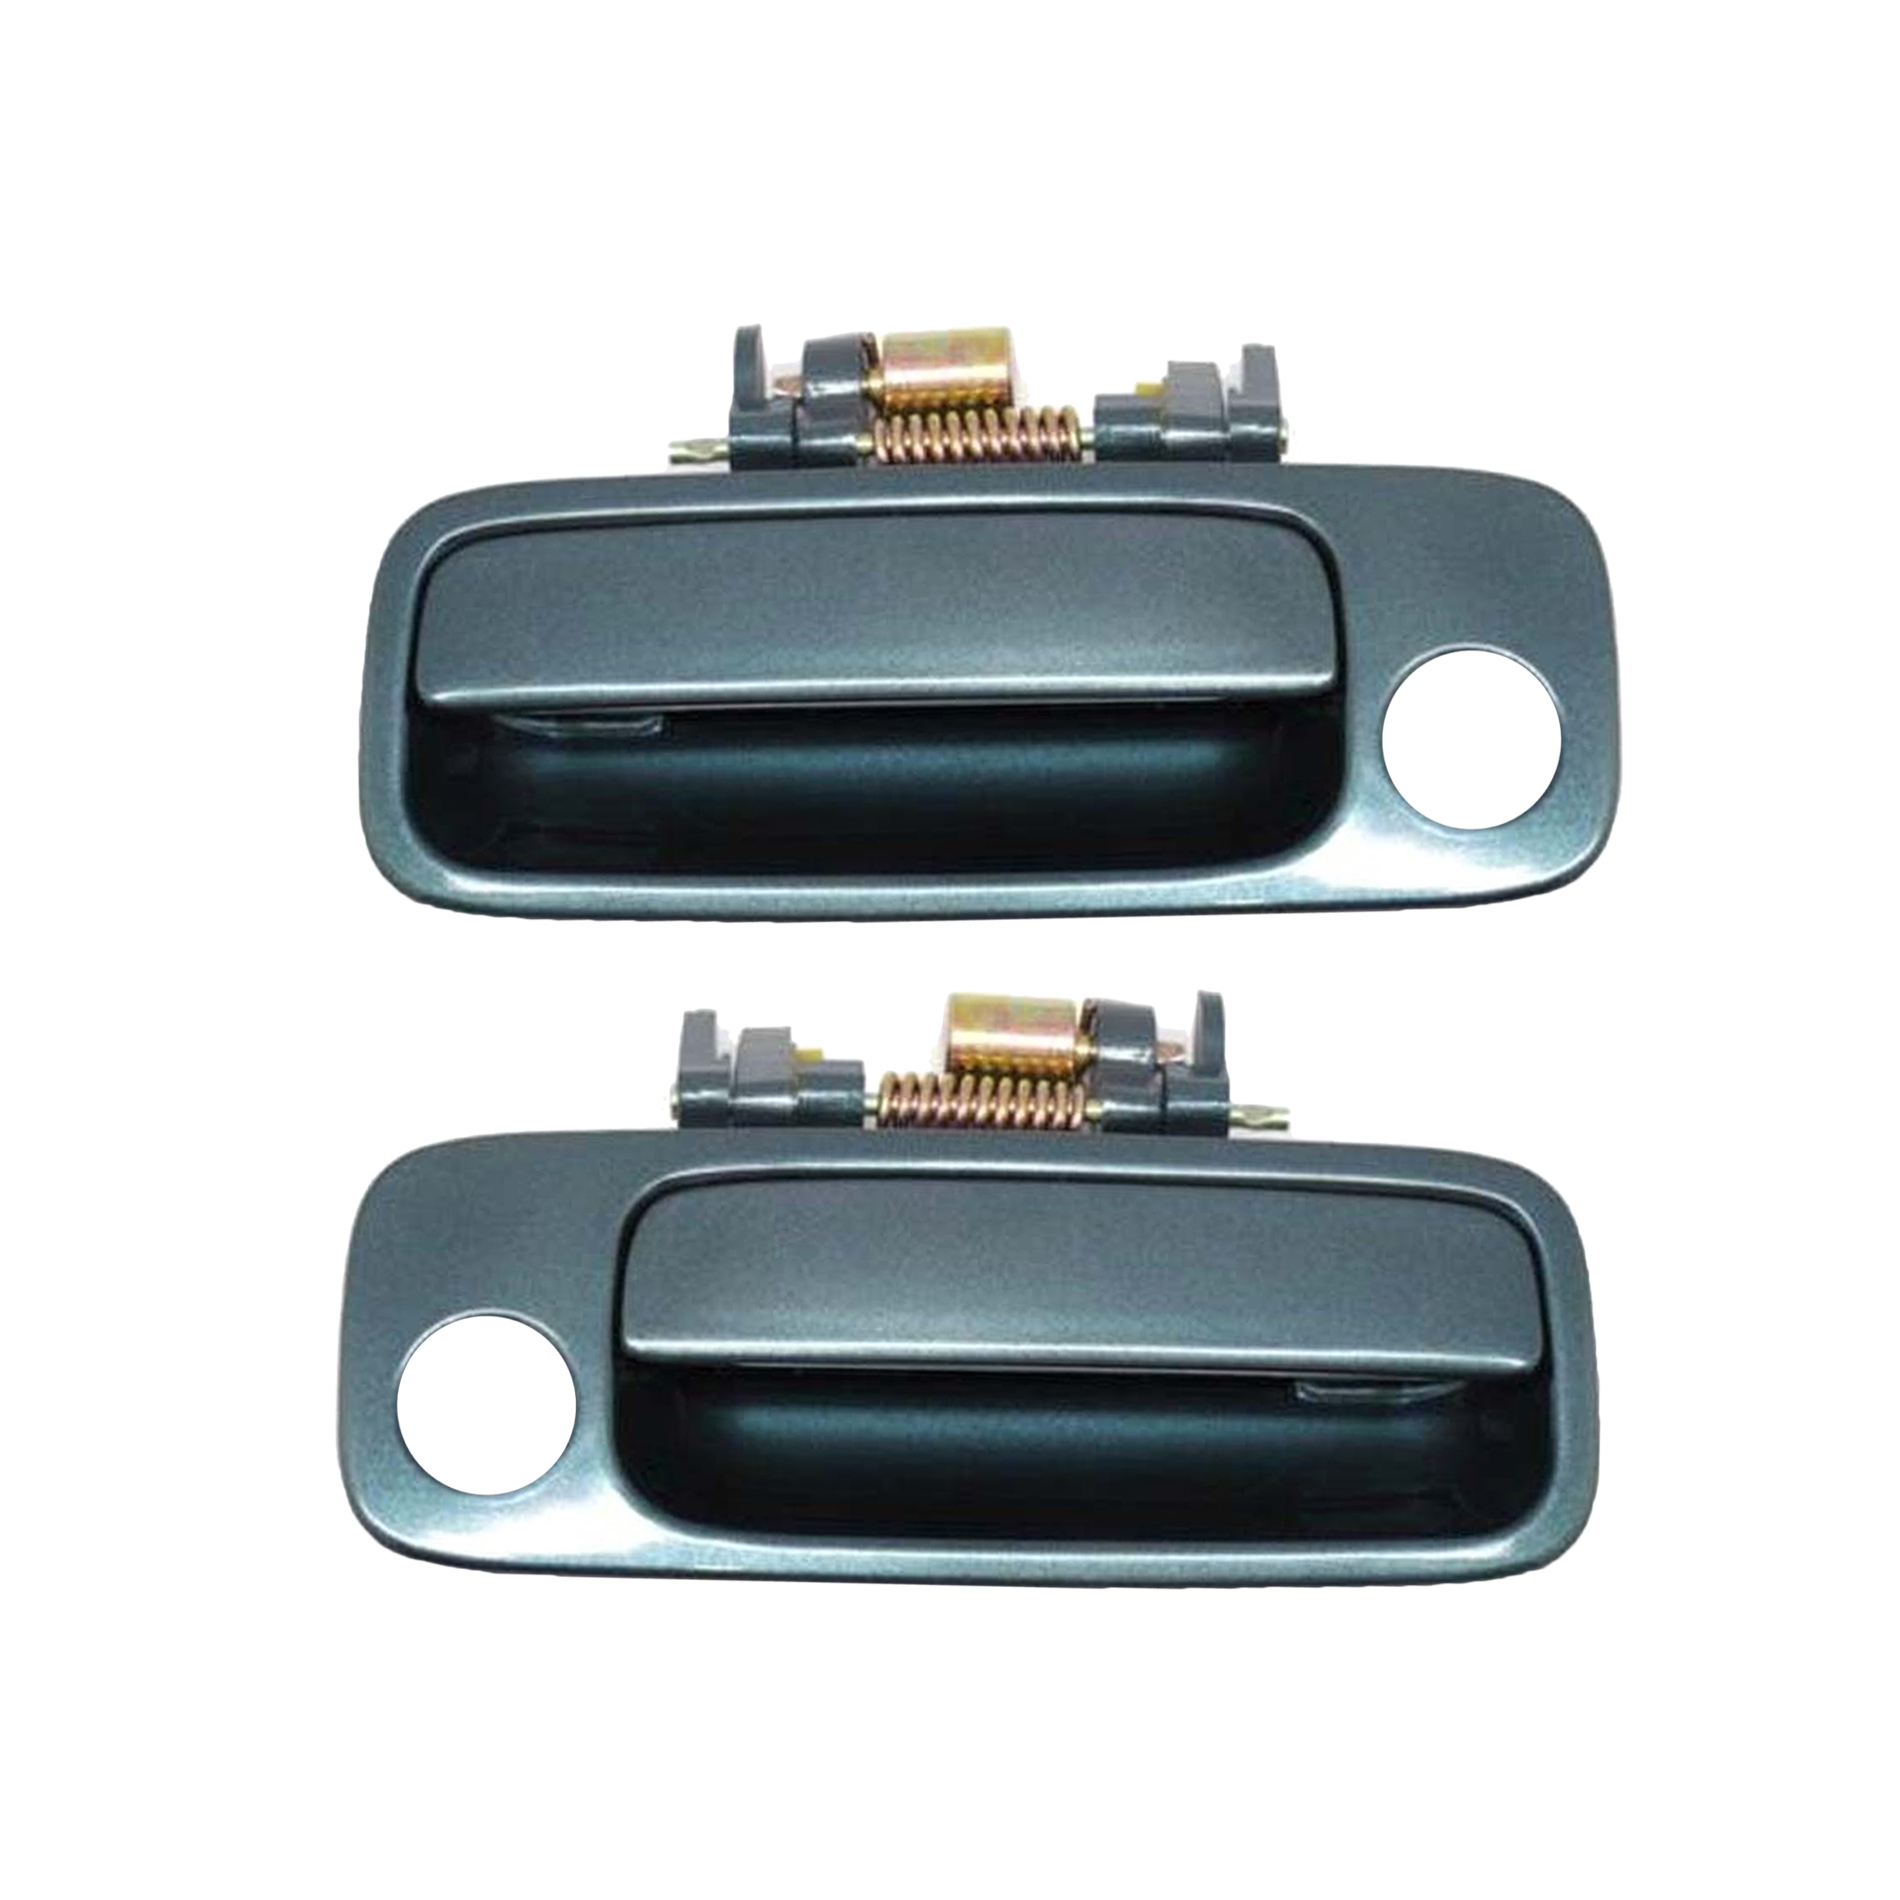 Brand NEW For Front 1997-2001 Toyota Camry Blue 8N7 Outside Outer Door Handle 2PCS 97 98 99 00 01